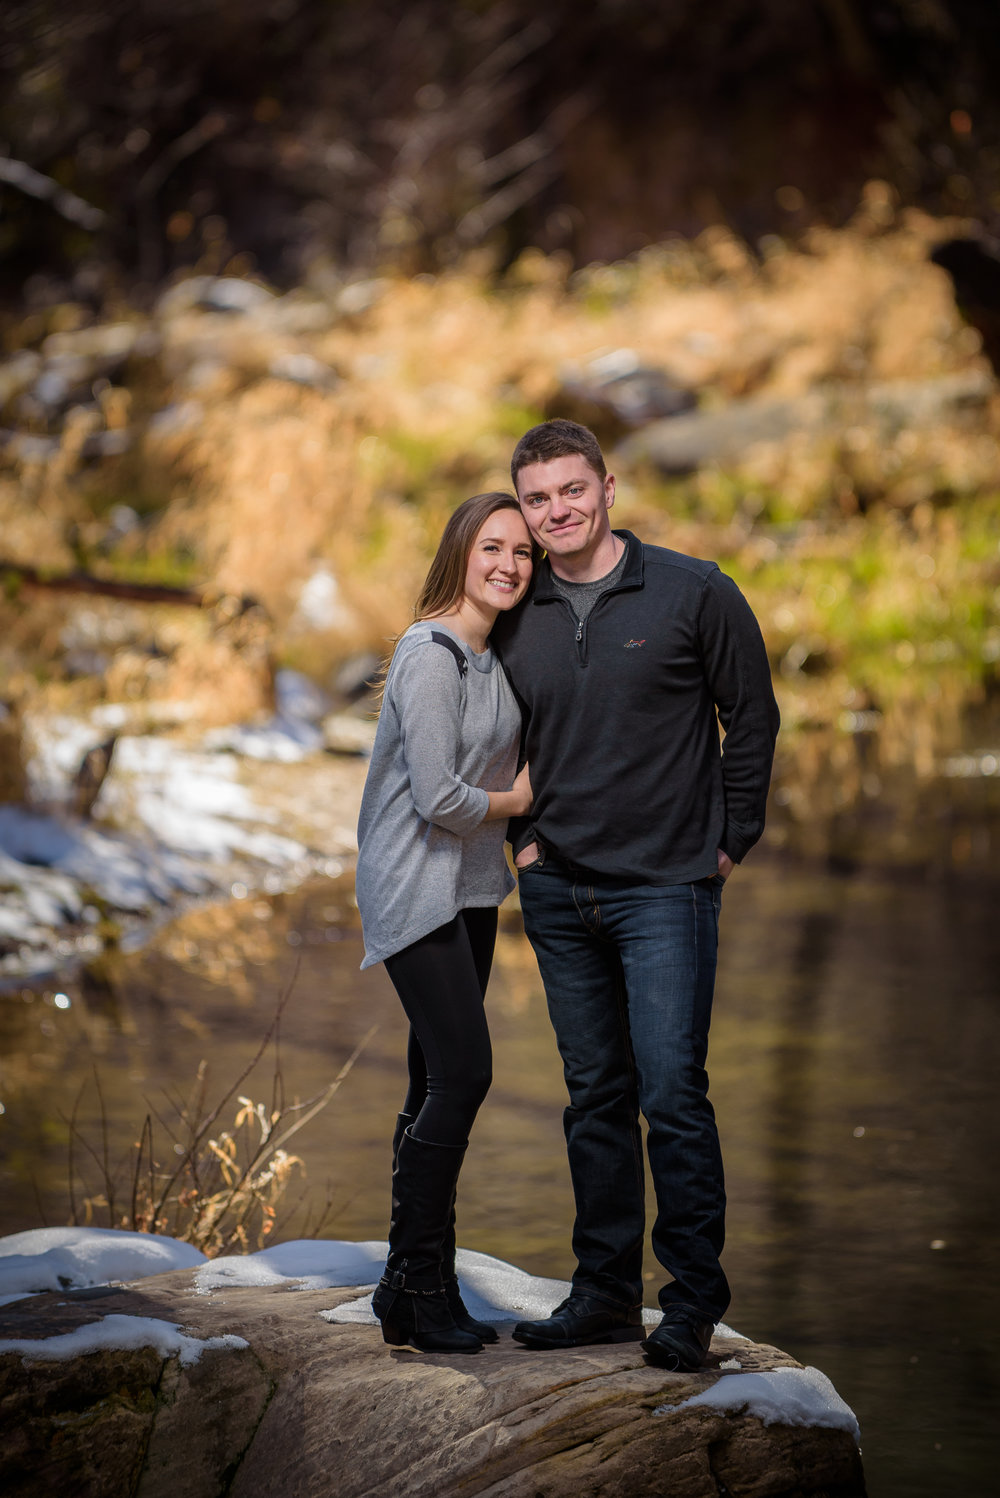 2018_02_25_Spriggs_Ryan_and_Julianna_Frushour-2019.jpg